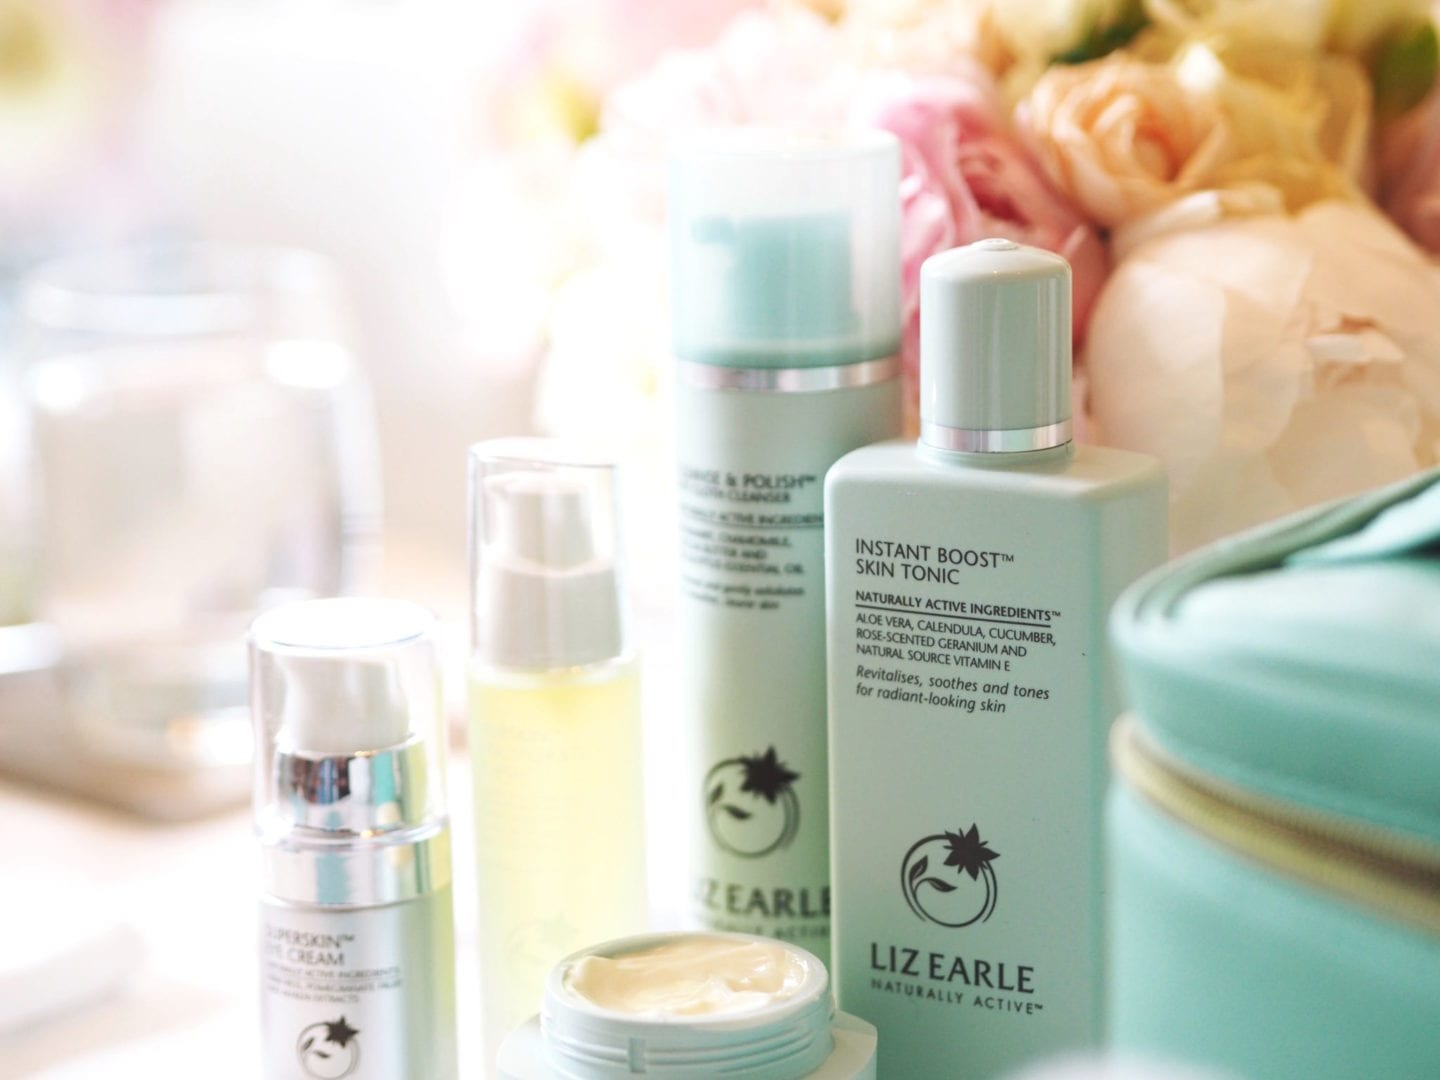 Getting-Ready-For-The-Big-Day-With-Liz-Earle